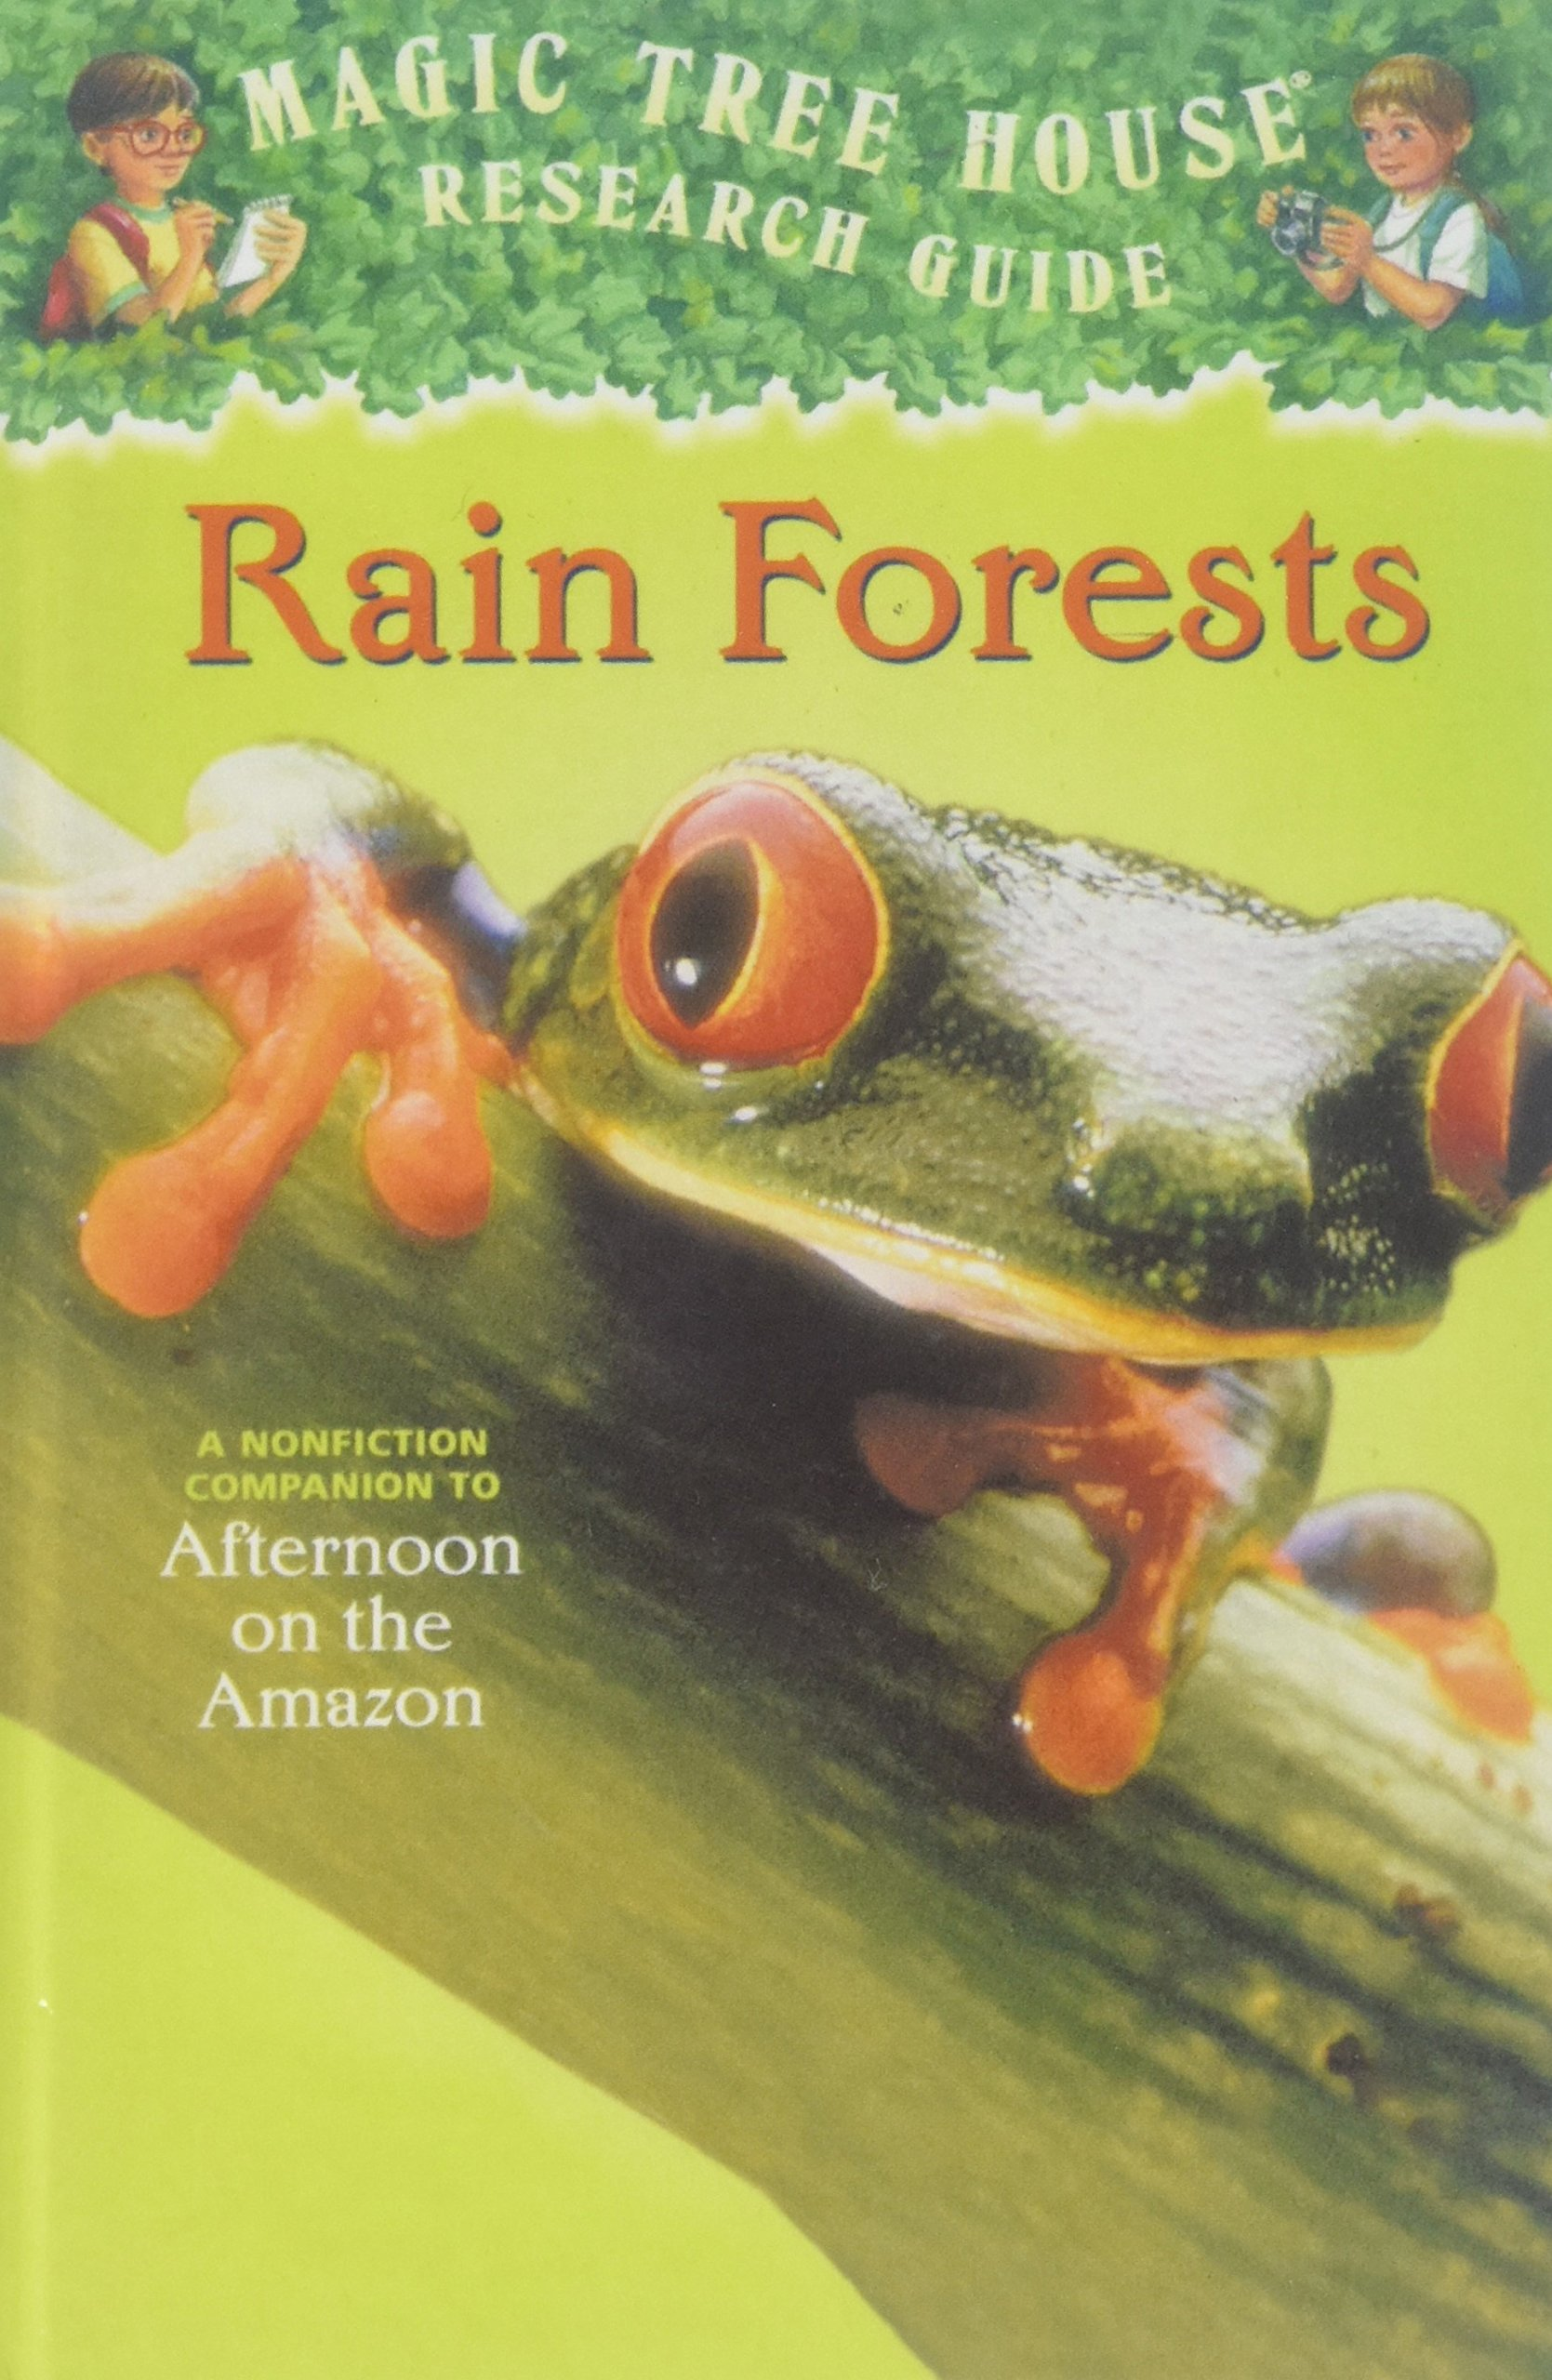 Rain Forests: A Nonfiction Companion to Afternoon on the Amazon (Magic Tree House Research Guide) pdf